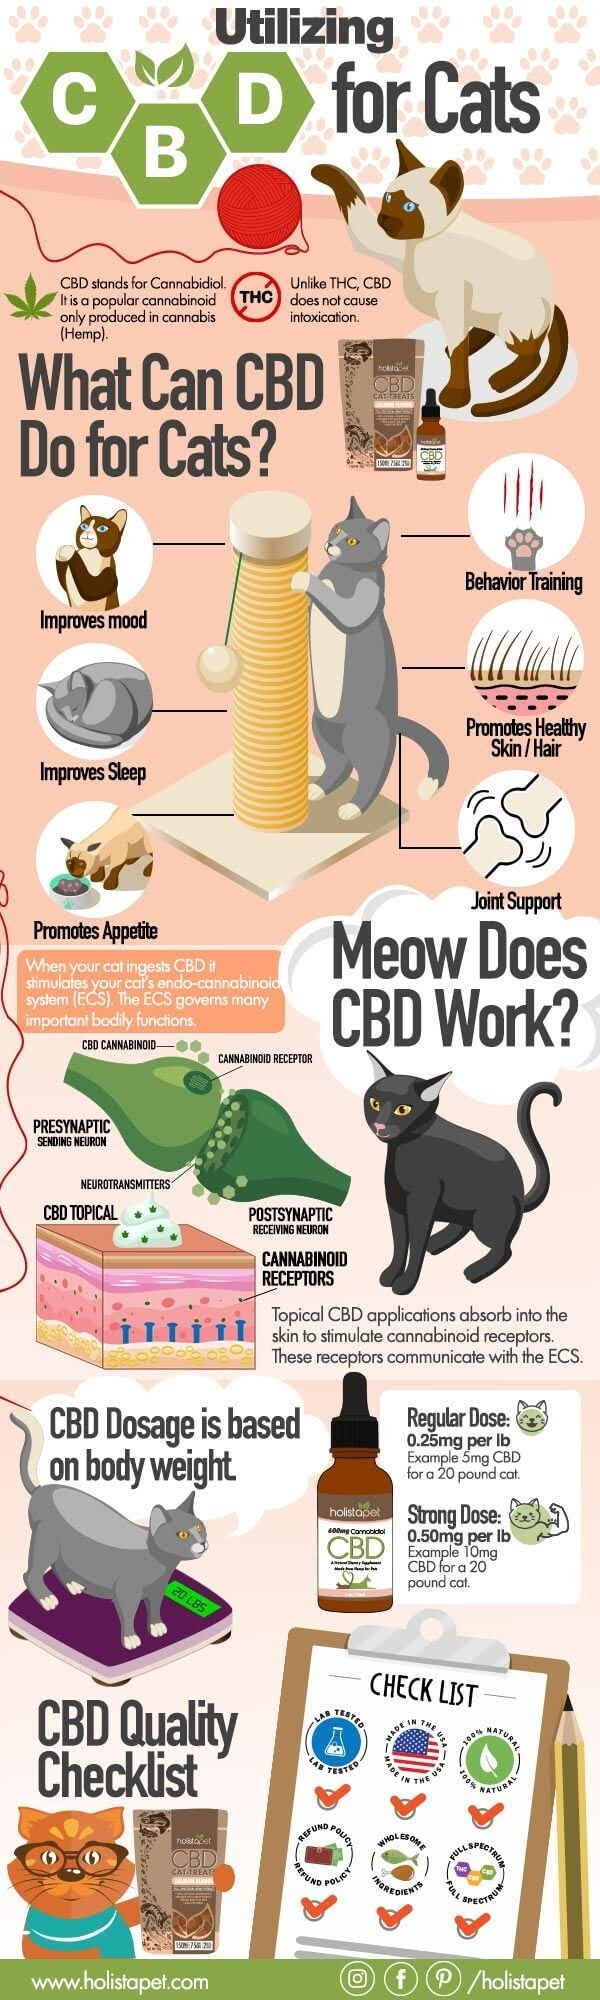 Utilizing CBD for Cats #infographic